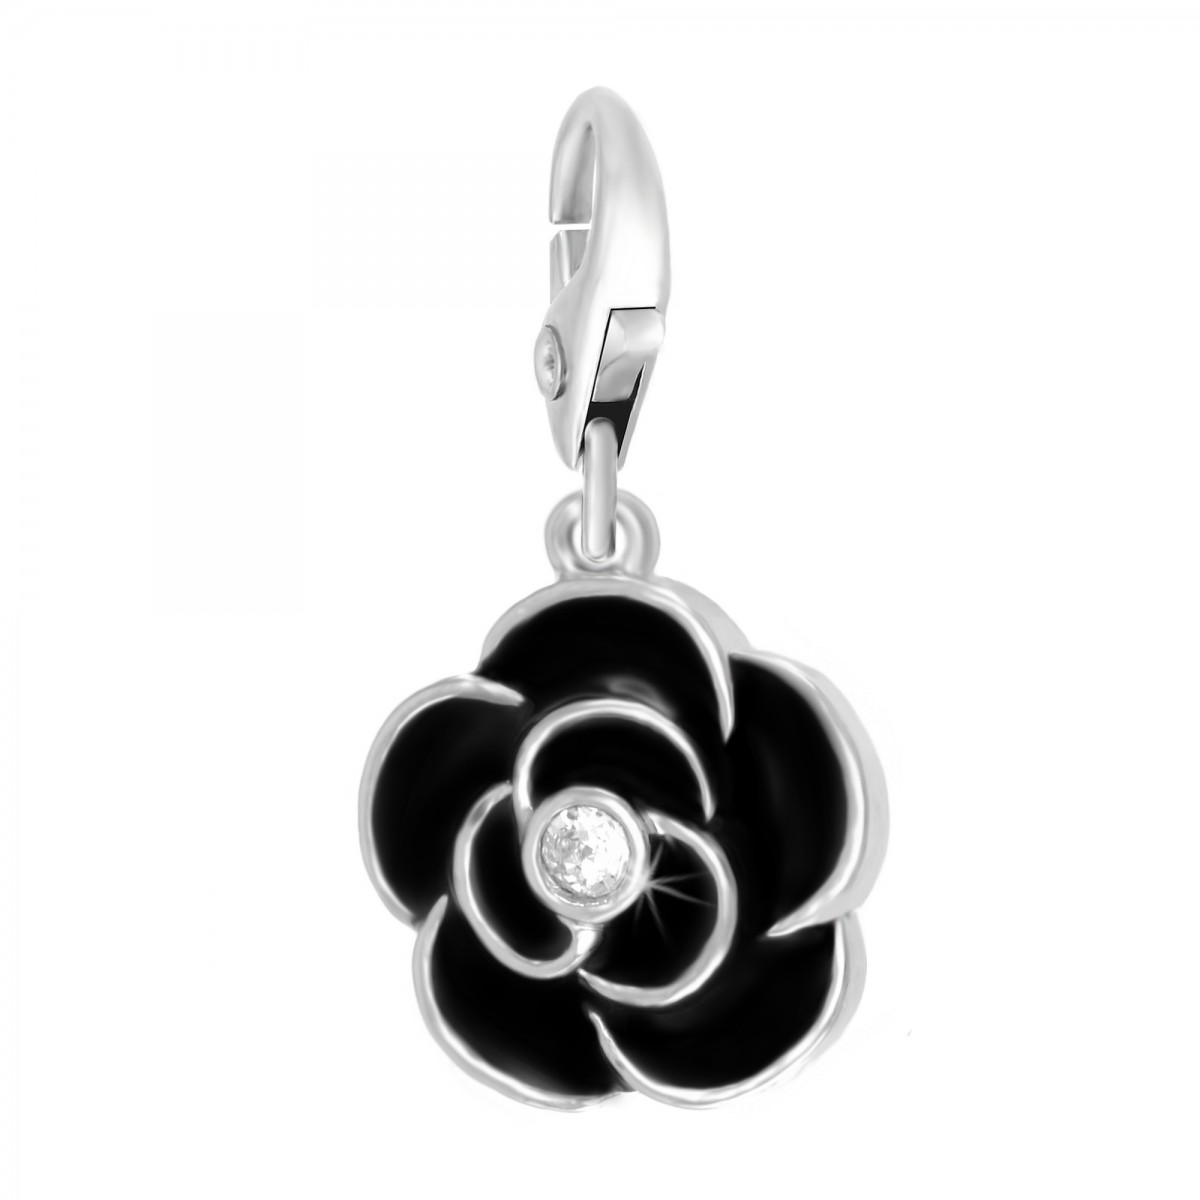 Charm Rose Noire So Charm made with crystal from Swarovksi